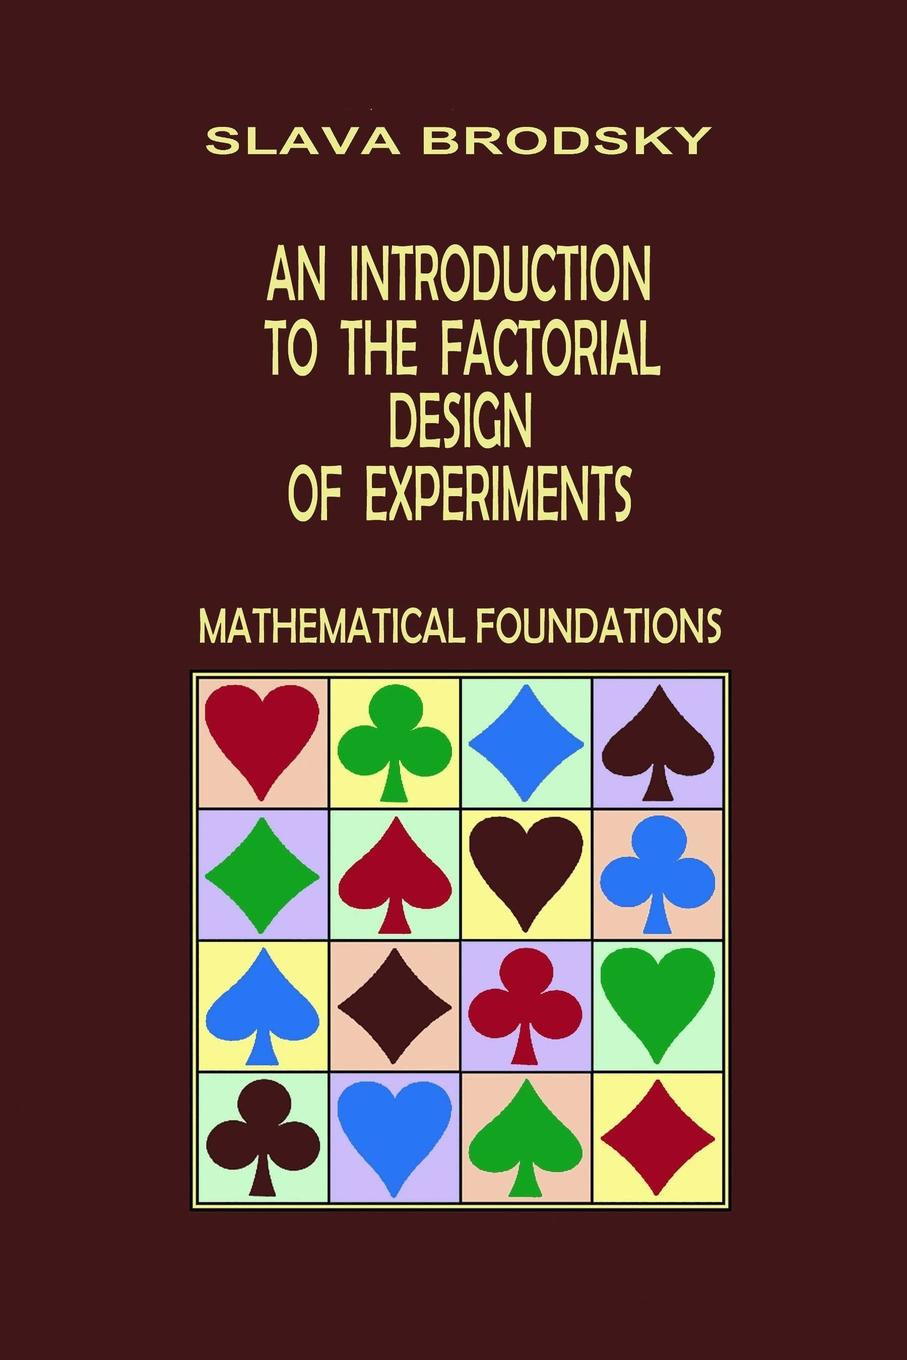 Slava Brodsky An Introduction to the Factorial Design of Experiments (Mathematical Foundations) musimathics – the mathematical foundations of music volume 2